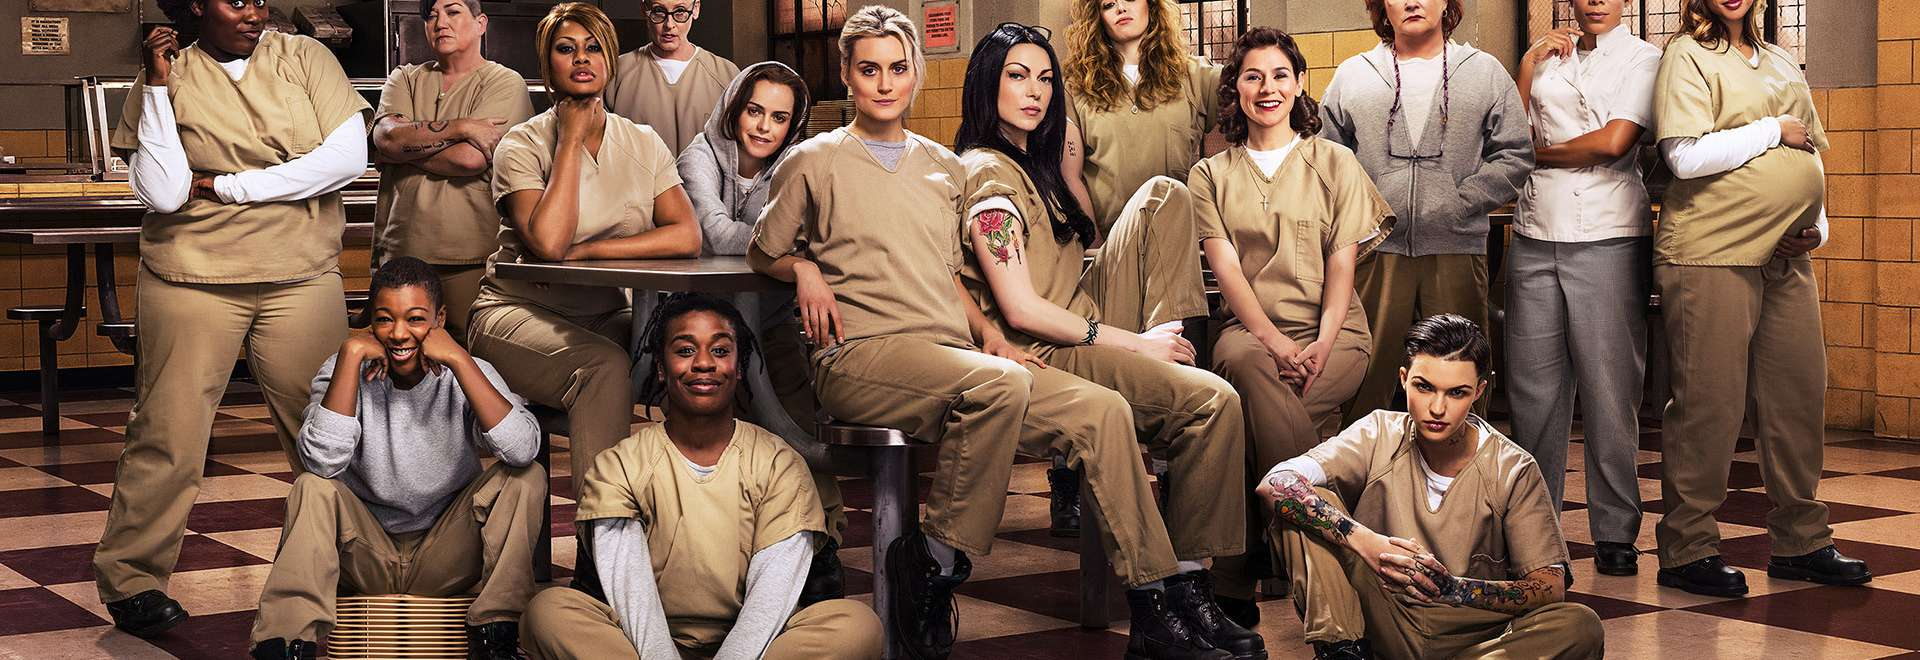 Orange Is the New Black Feature Image